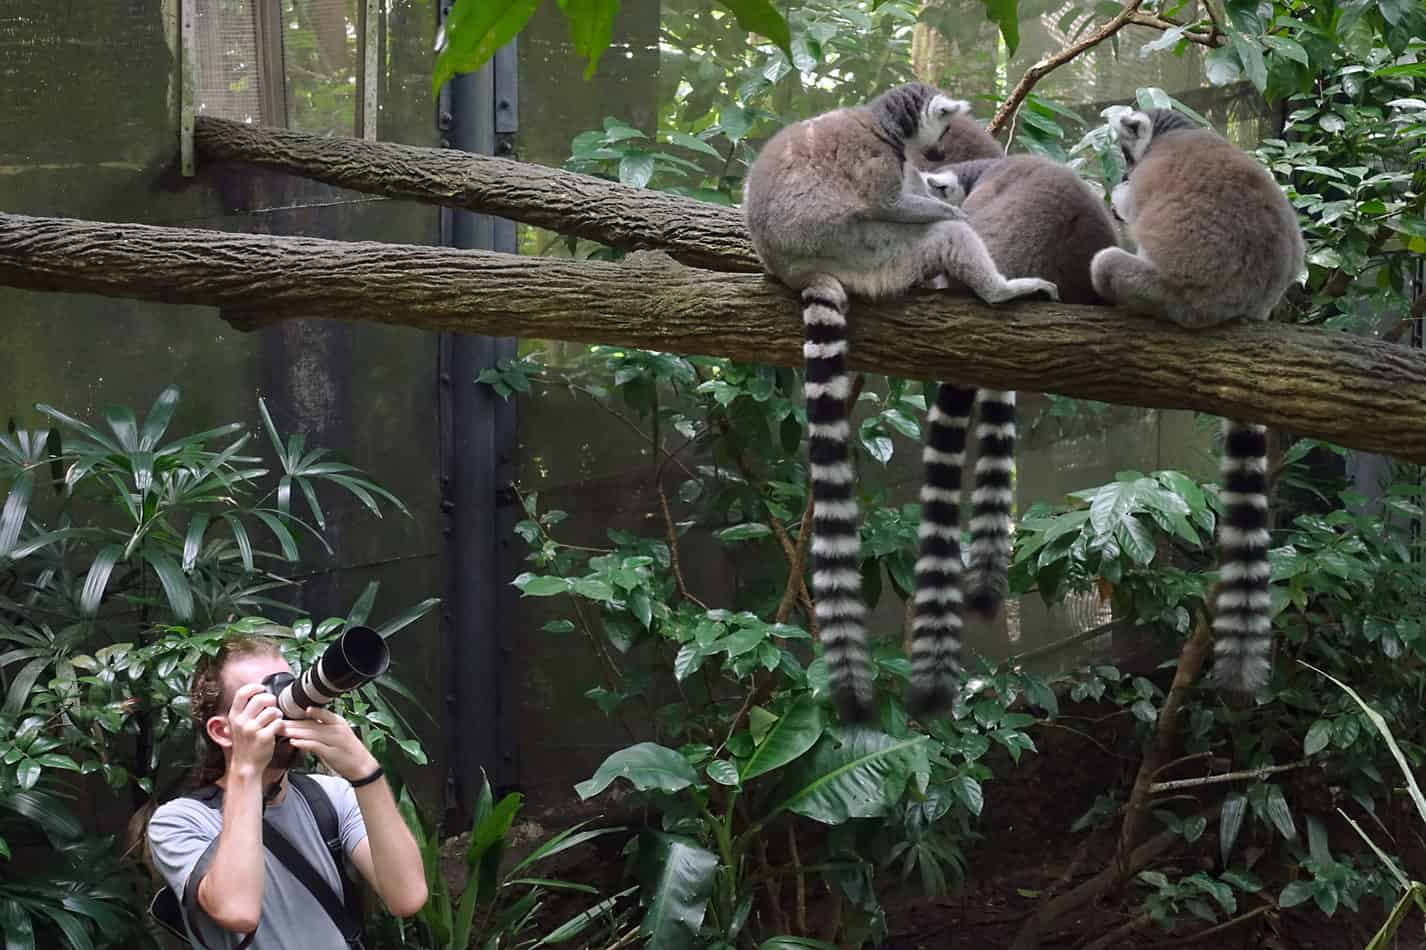 Can You Sell Photos of Zoo Animals